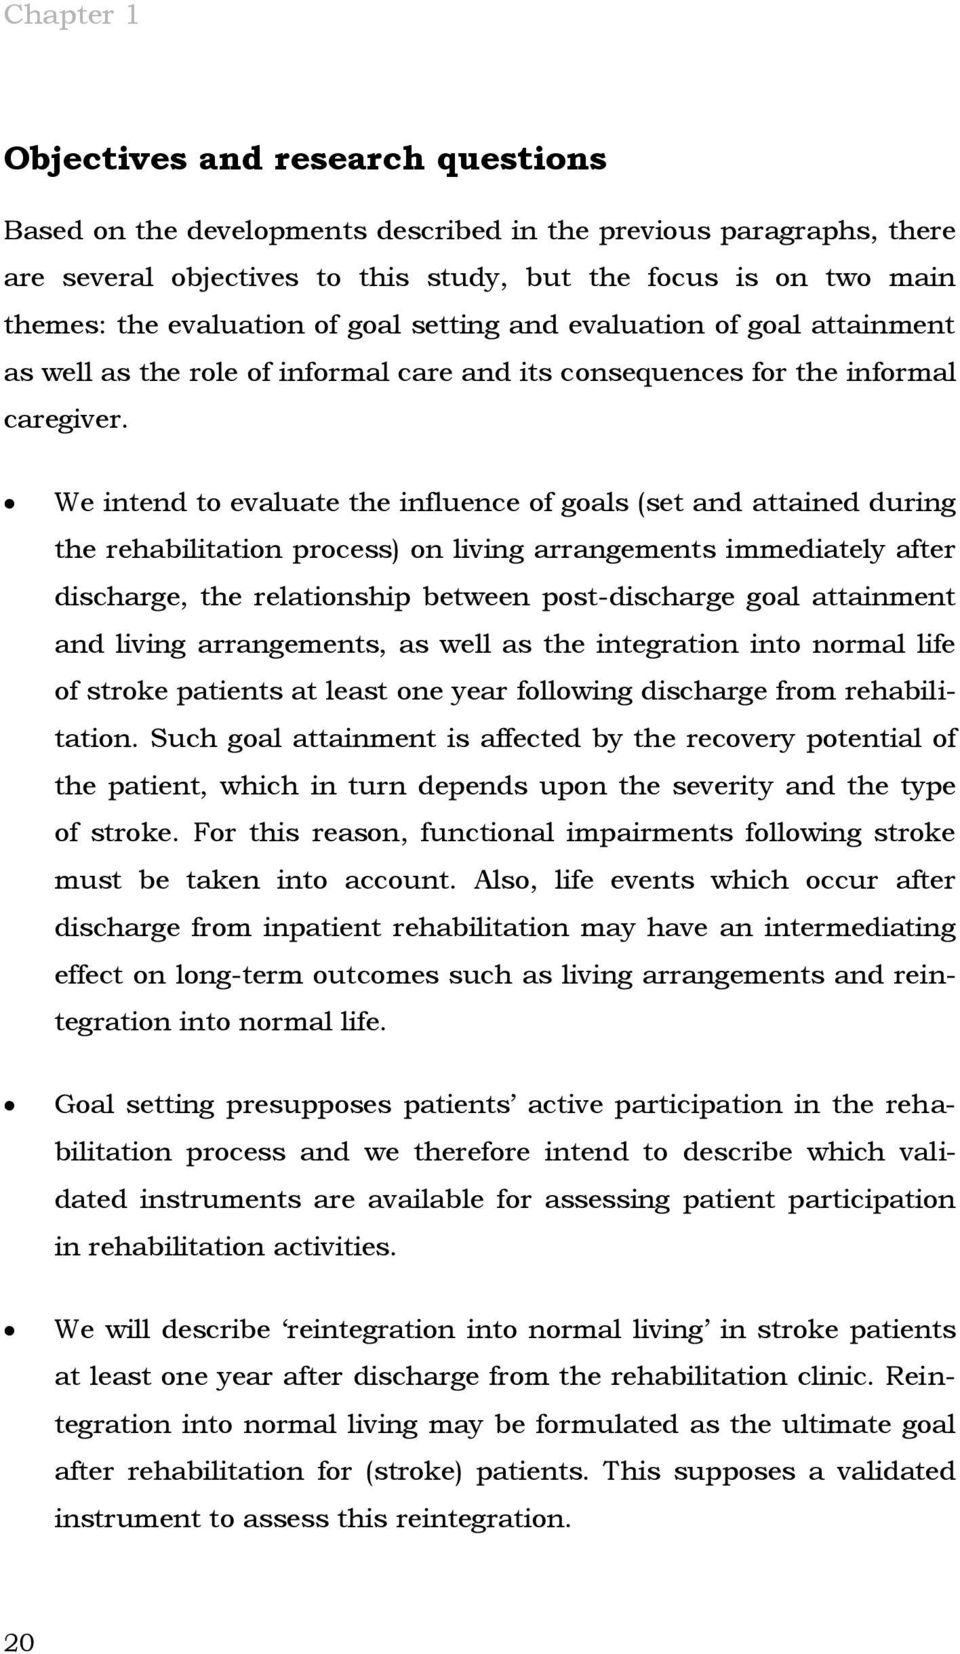 We intend to evaluate the influence of goals (set and attained during the rehabilitation process) on living arrangements immediately after discharge, the relationship between post-discharge goal